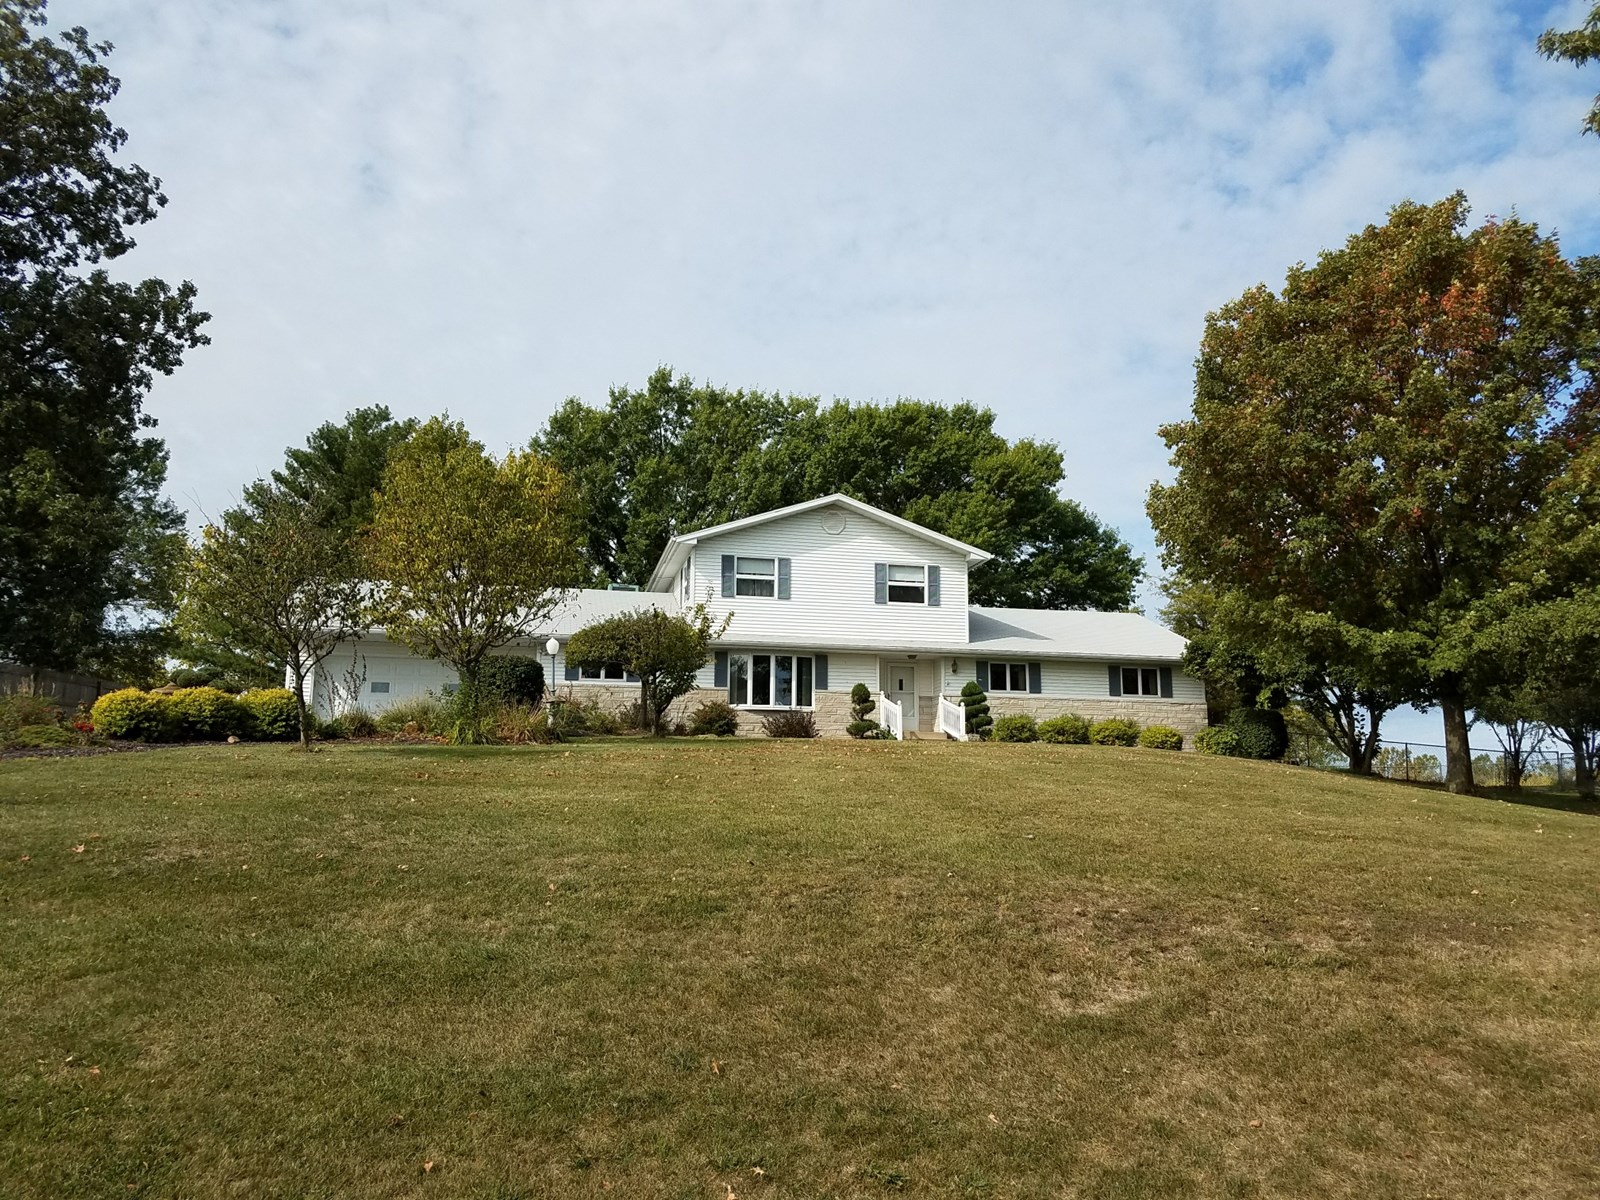 Country Home For Sale, Blacktop Road Frontage, Memphis, MO